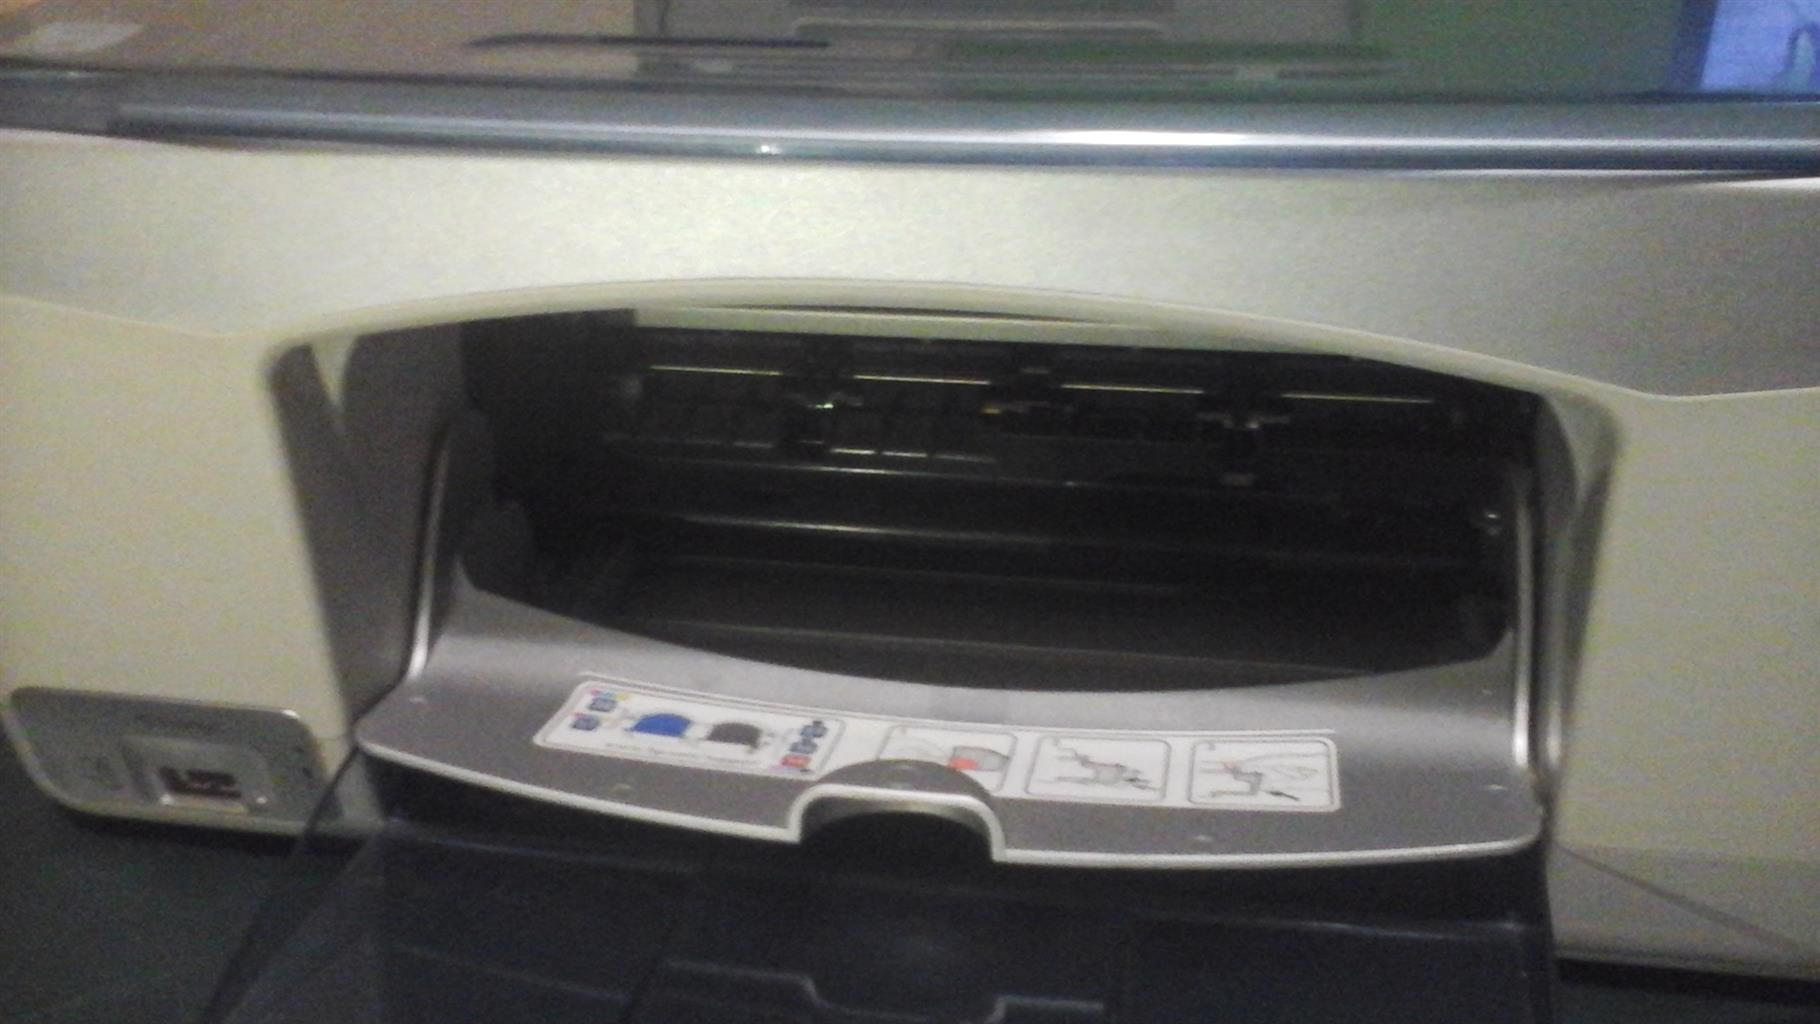 Hp 3 in 1 scanner, printer copier ideal for home office